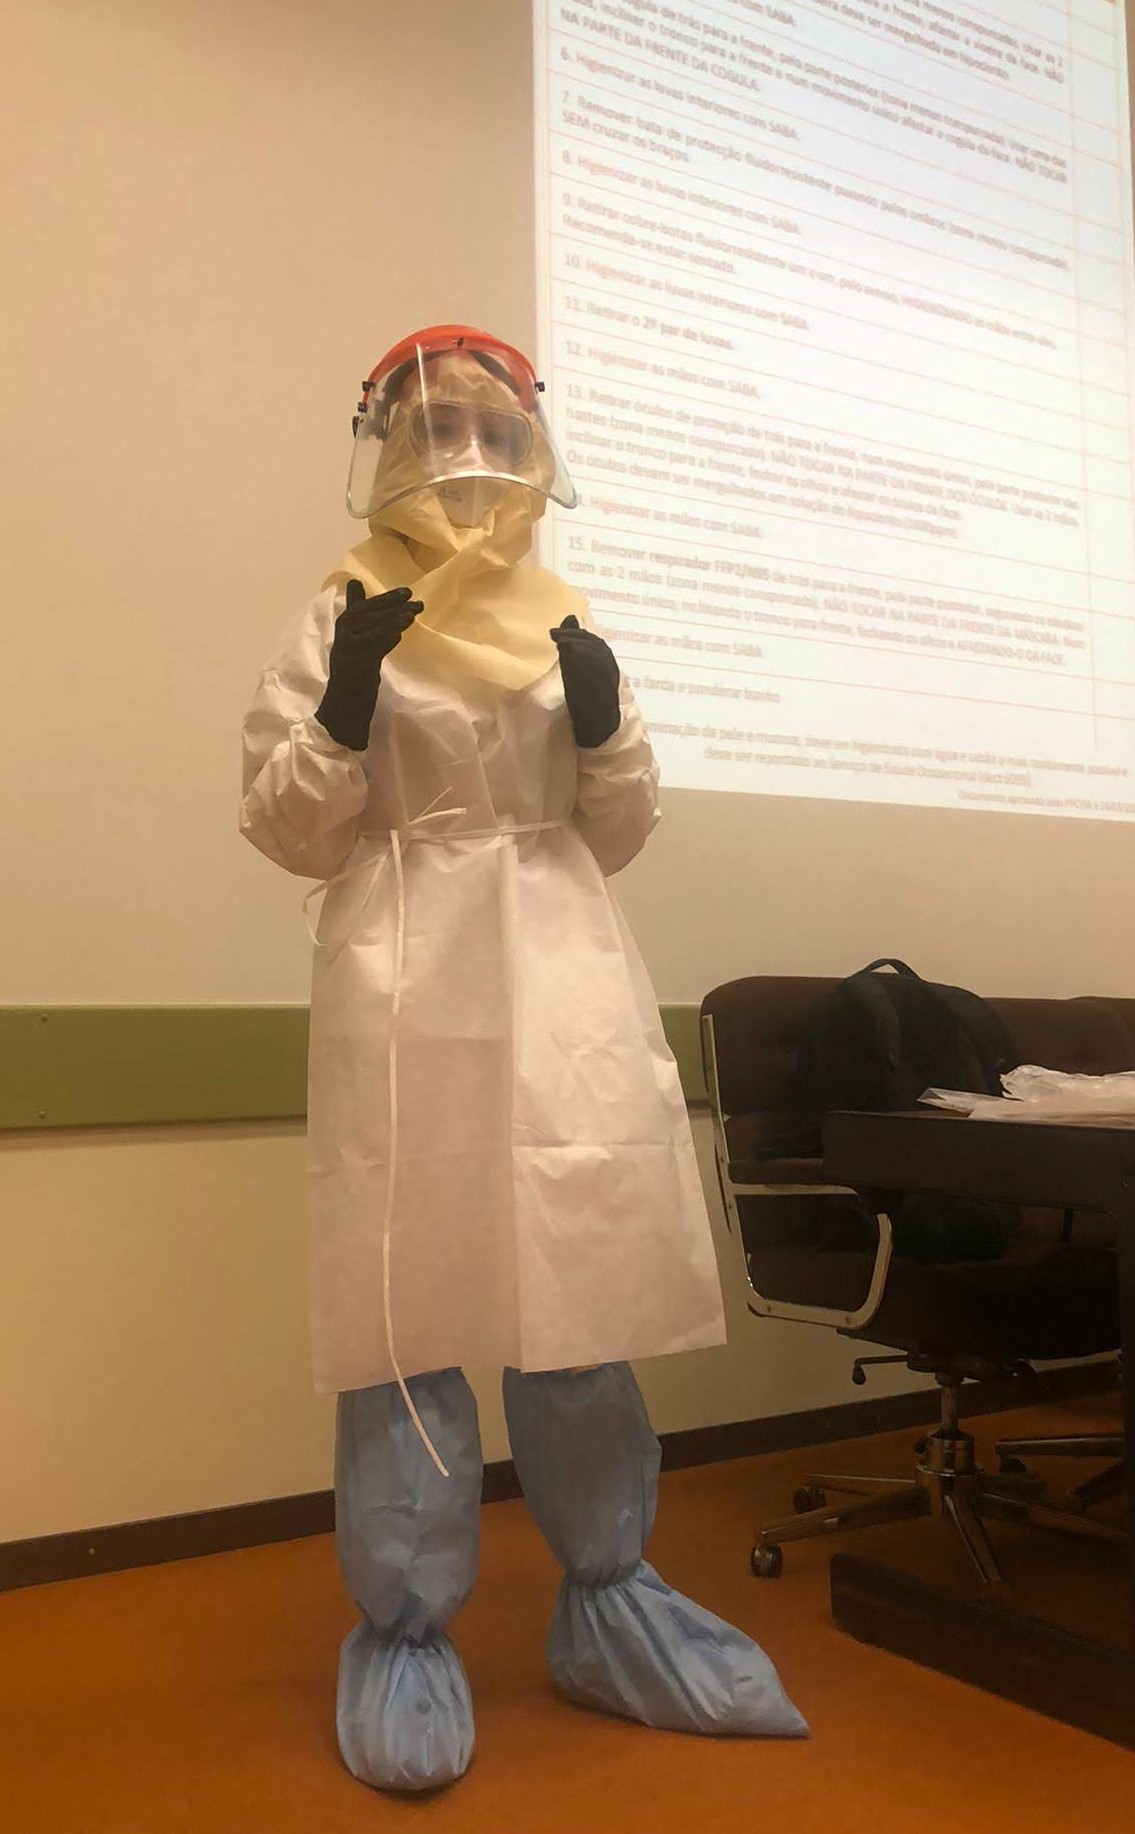 Use of PPE demonstration